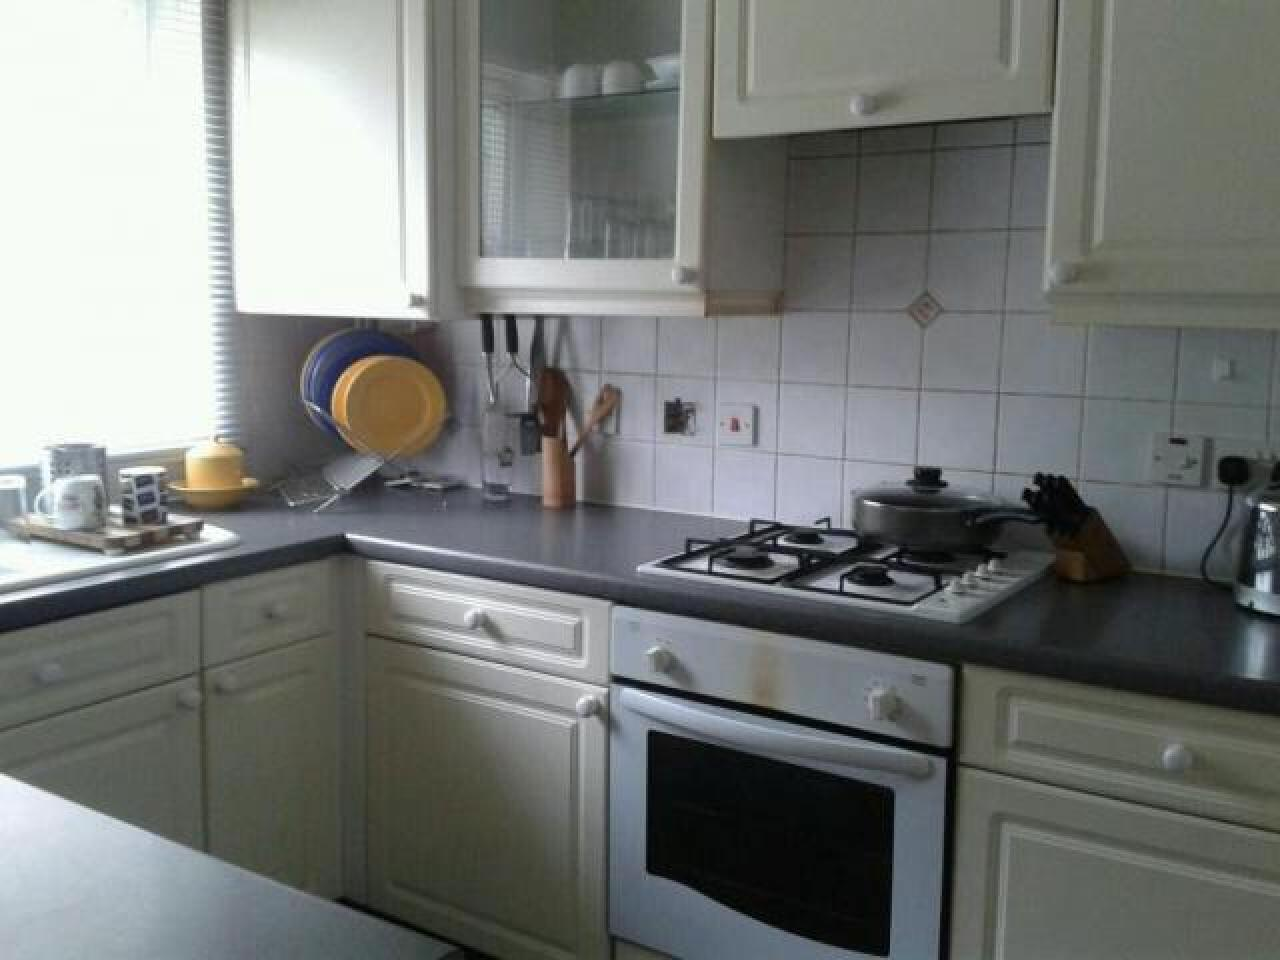 3 Bed House, Keel Close Barking, IG1 1 650 £ — Available Now - 7